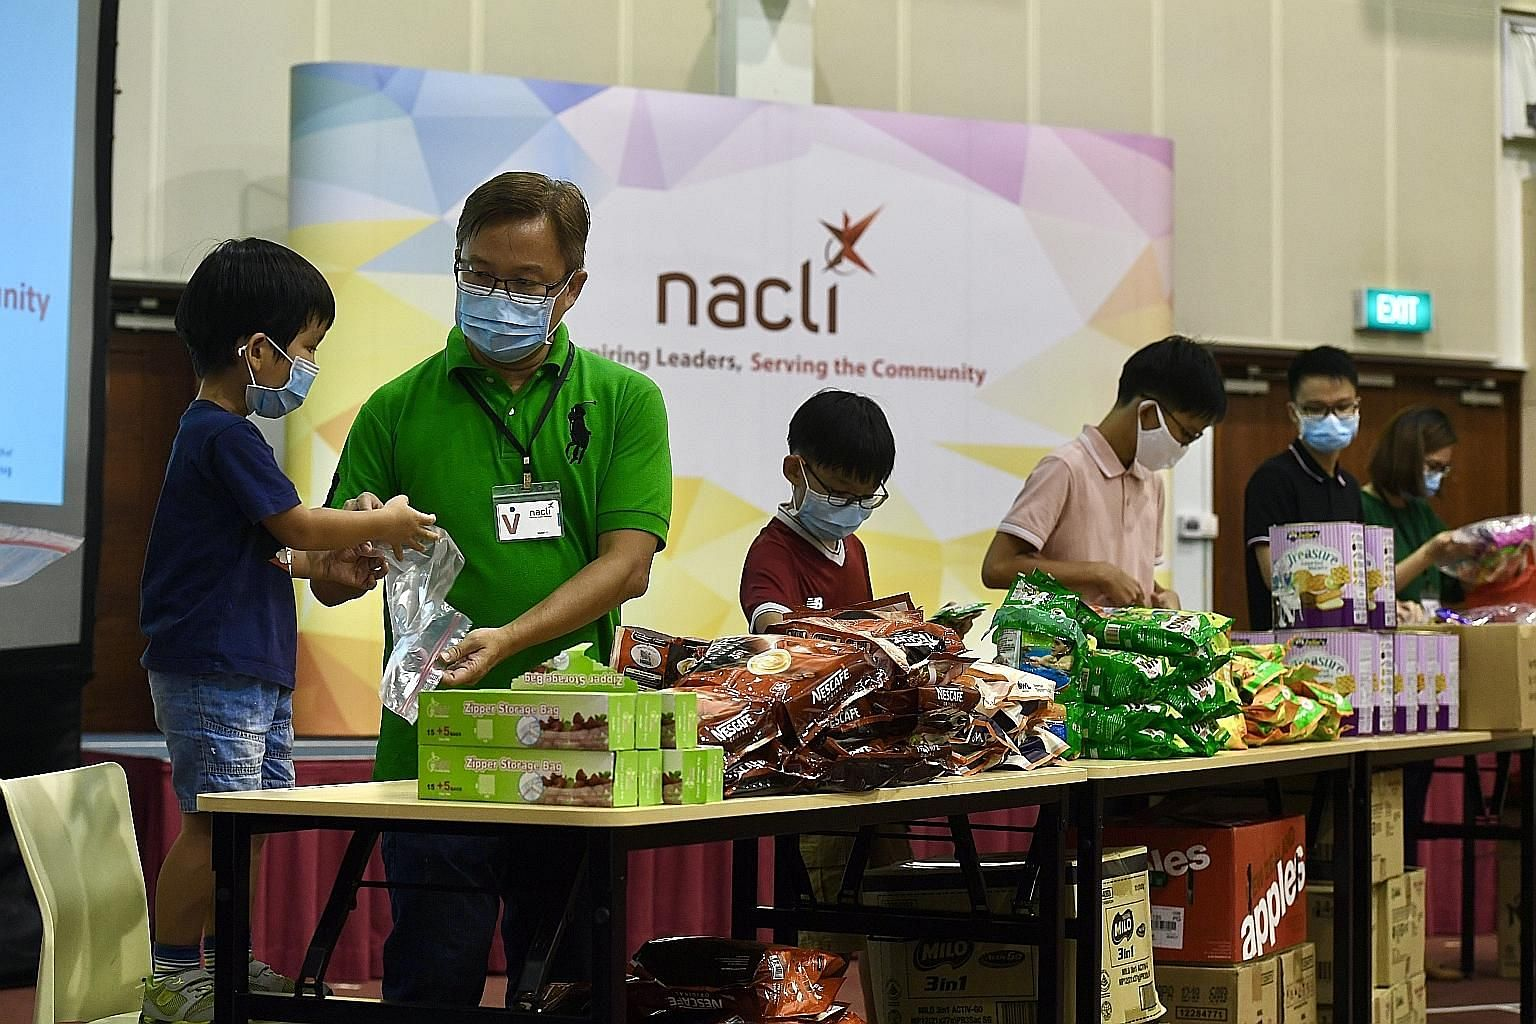 Singaporean Joshua Koh, 47, packing items with his youngest son Joash (far left), three, alongside sons Jireh, 10; Jakin, 13; and Jedidah, 17; and his wife Mrs Koh, 44, last month at the National Community Leadership Institute (Nacli) in South Buona